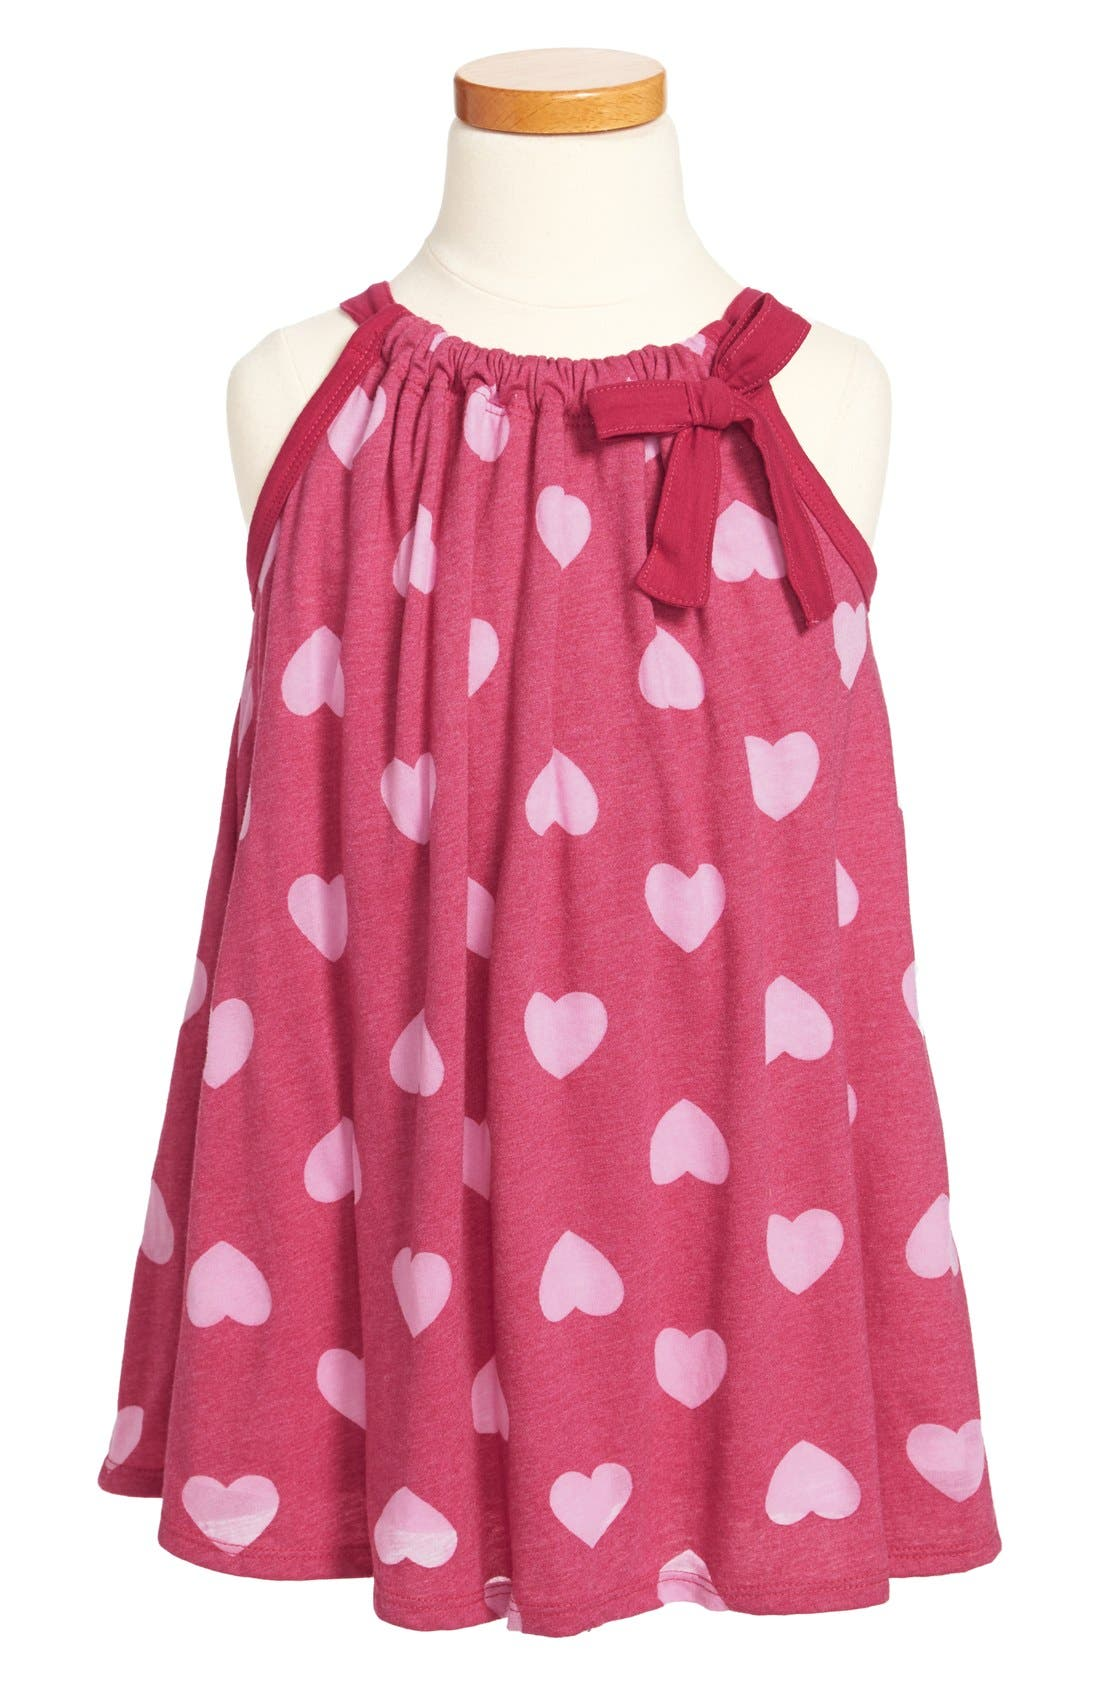 Alternate Image 1 Selected - Red Wagon Baby Print Dress (Little Girls)